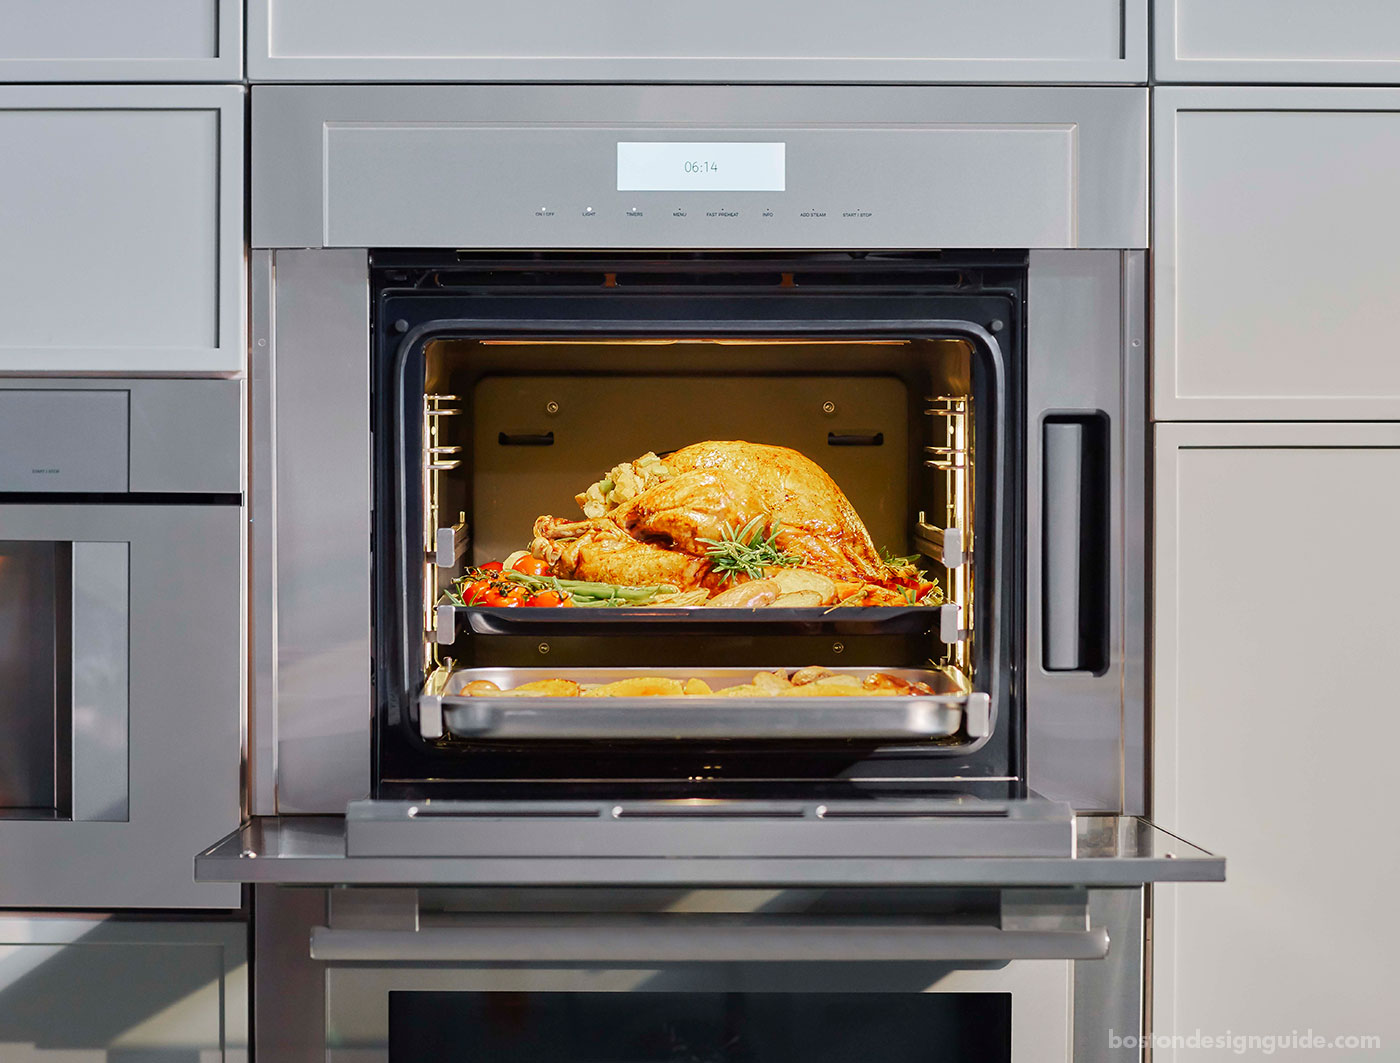 Thermador 30-Inch Master Double Oven available at Poirier Sales & Service